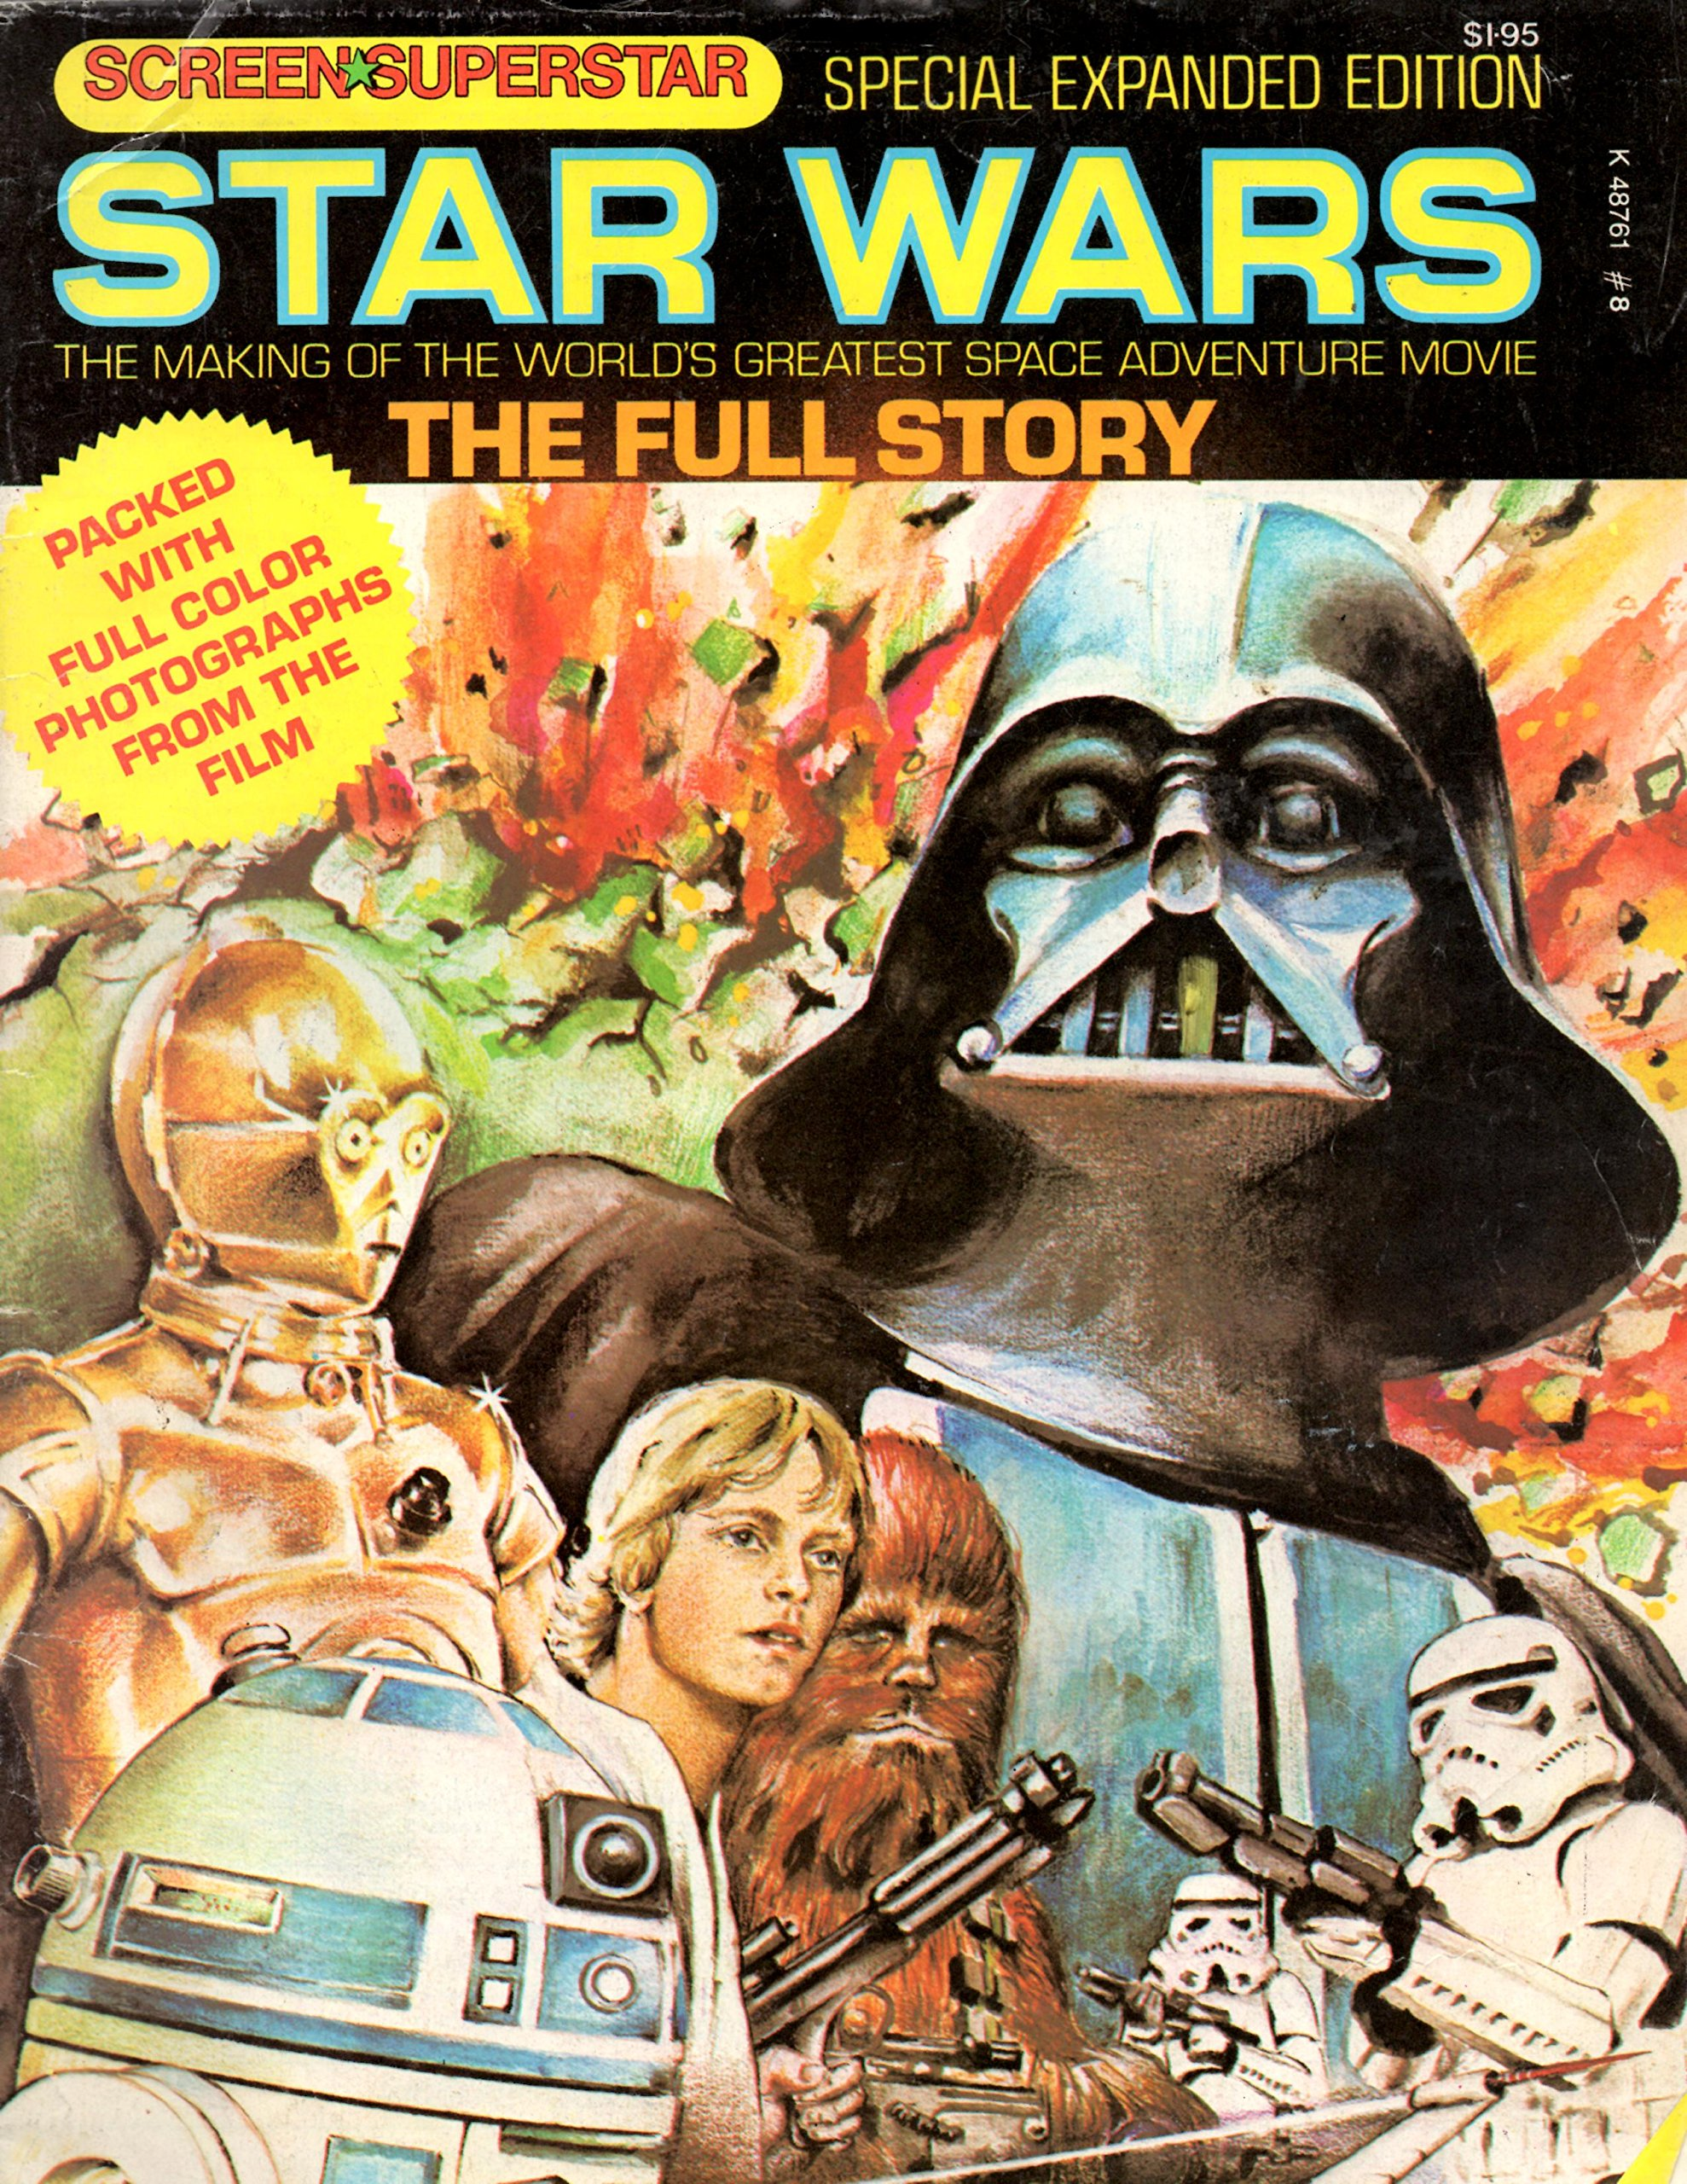 Star Wars: The Full Story - Screen Superstar Special Edition